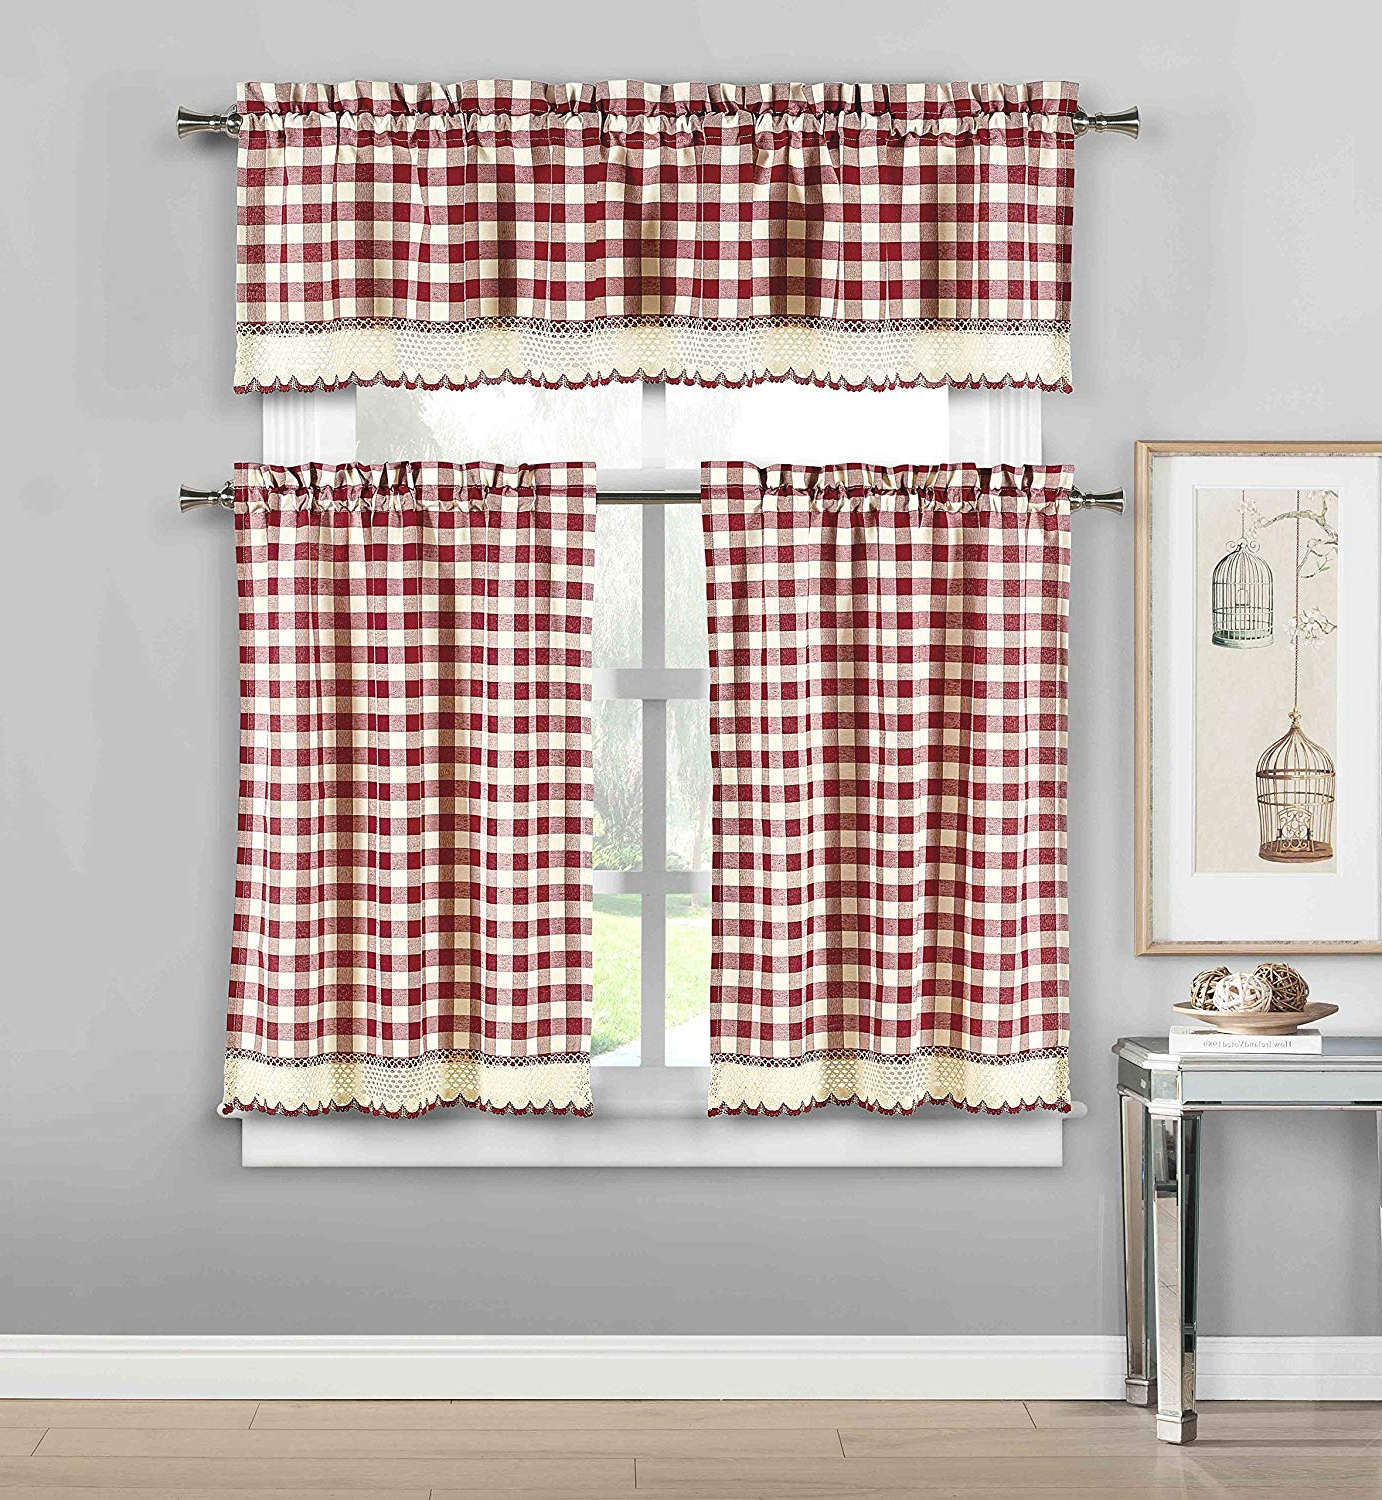 [%3 Piece Plaid, Checkered, Gingham Kitchen Curtain Set: 35% Cotton, 1 Valance, 2 Tier Panels, With Crochet Accent (garnet) Within Popular Classic Navy Cotton Blend Buffalo Check Kitchen Curtain Sets|classic Navy Cotton Blend Buffalo Check Kitchen Curtain Sets Throughout Recent 3 Piece Plaid, Checkered, Gingham Kitchen Curtain Set: 35% Cotton, 1 Valance, 2 Tier Panels, With Crochet Accent (garnet)|latest Classic Navy Cotton Blend Buffalo Check Kitchen Curtain Sets Intended For 3 Piece Plaid, Checkered, Gingham Kitchen Curtain Set: 35% Cotton, 1 Valance, 2 Tier Panels, With Crochet Accent (garnet)|widely Used 3 Piece Plaid, Checkered, Gingham Kitchen Curtain Set: 35% Cotton, 1 Valance, 2 Tier Panels, With Crochet Accent (garnet) Inside Classic Navy Cotton Blend Buffalo Check Kitchen Curtain Sets%] (View 12 of 20)